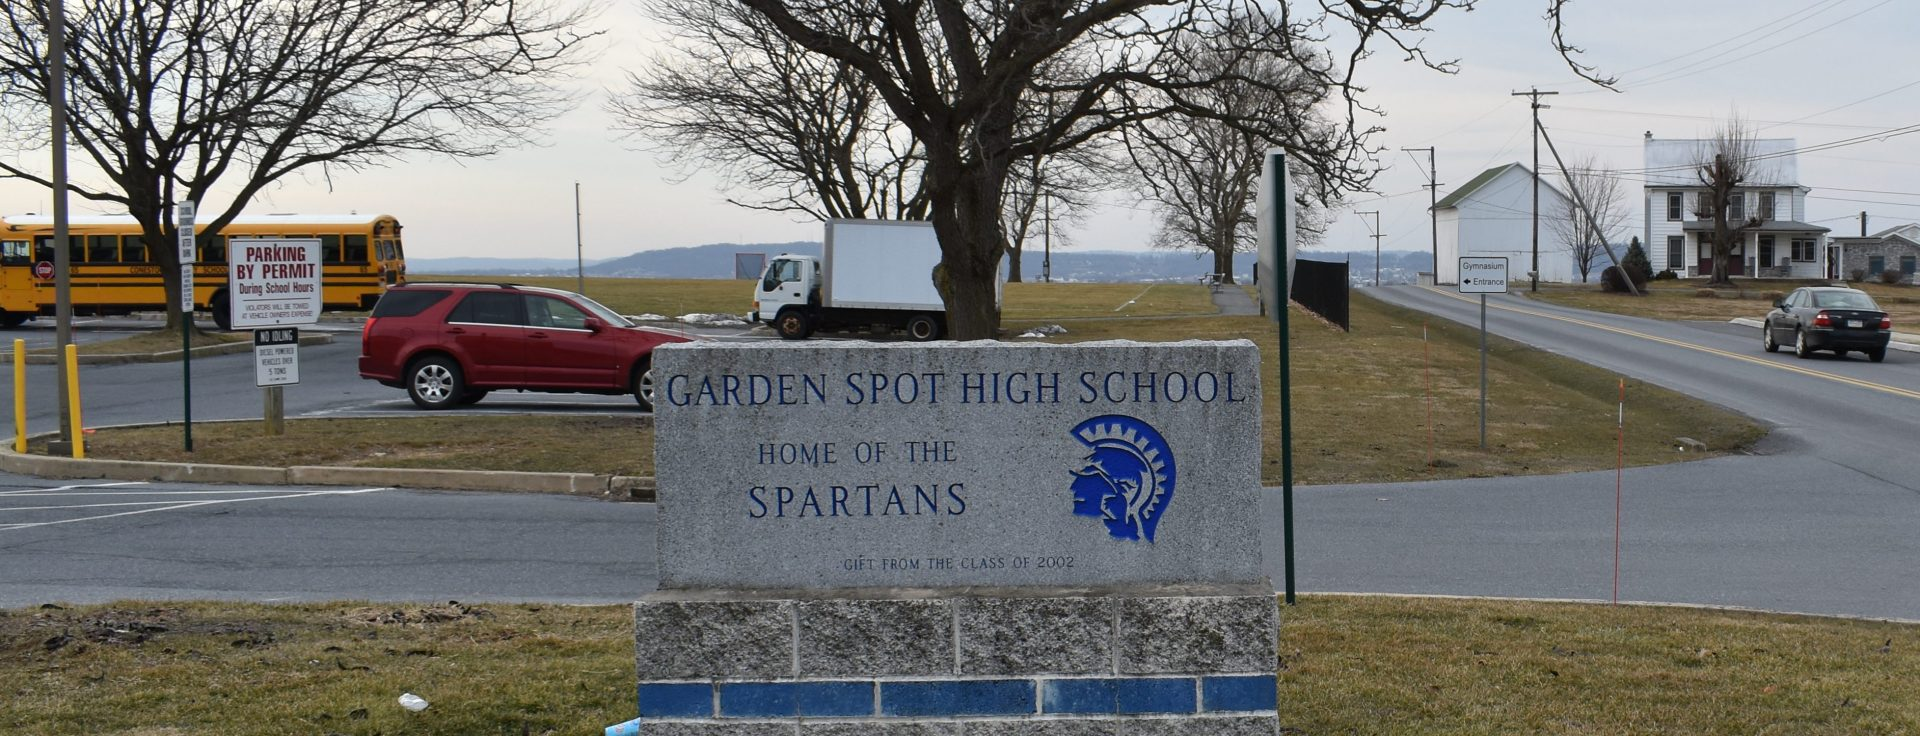 An entrance to Garden Spot High School is seen on March 14, 2019.